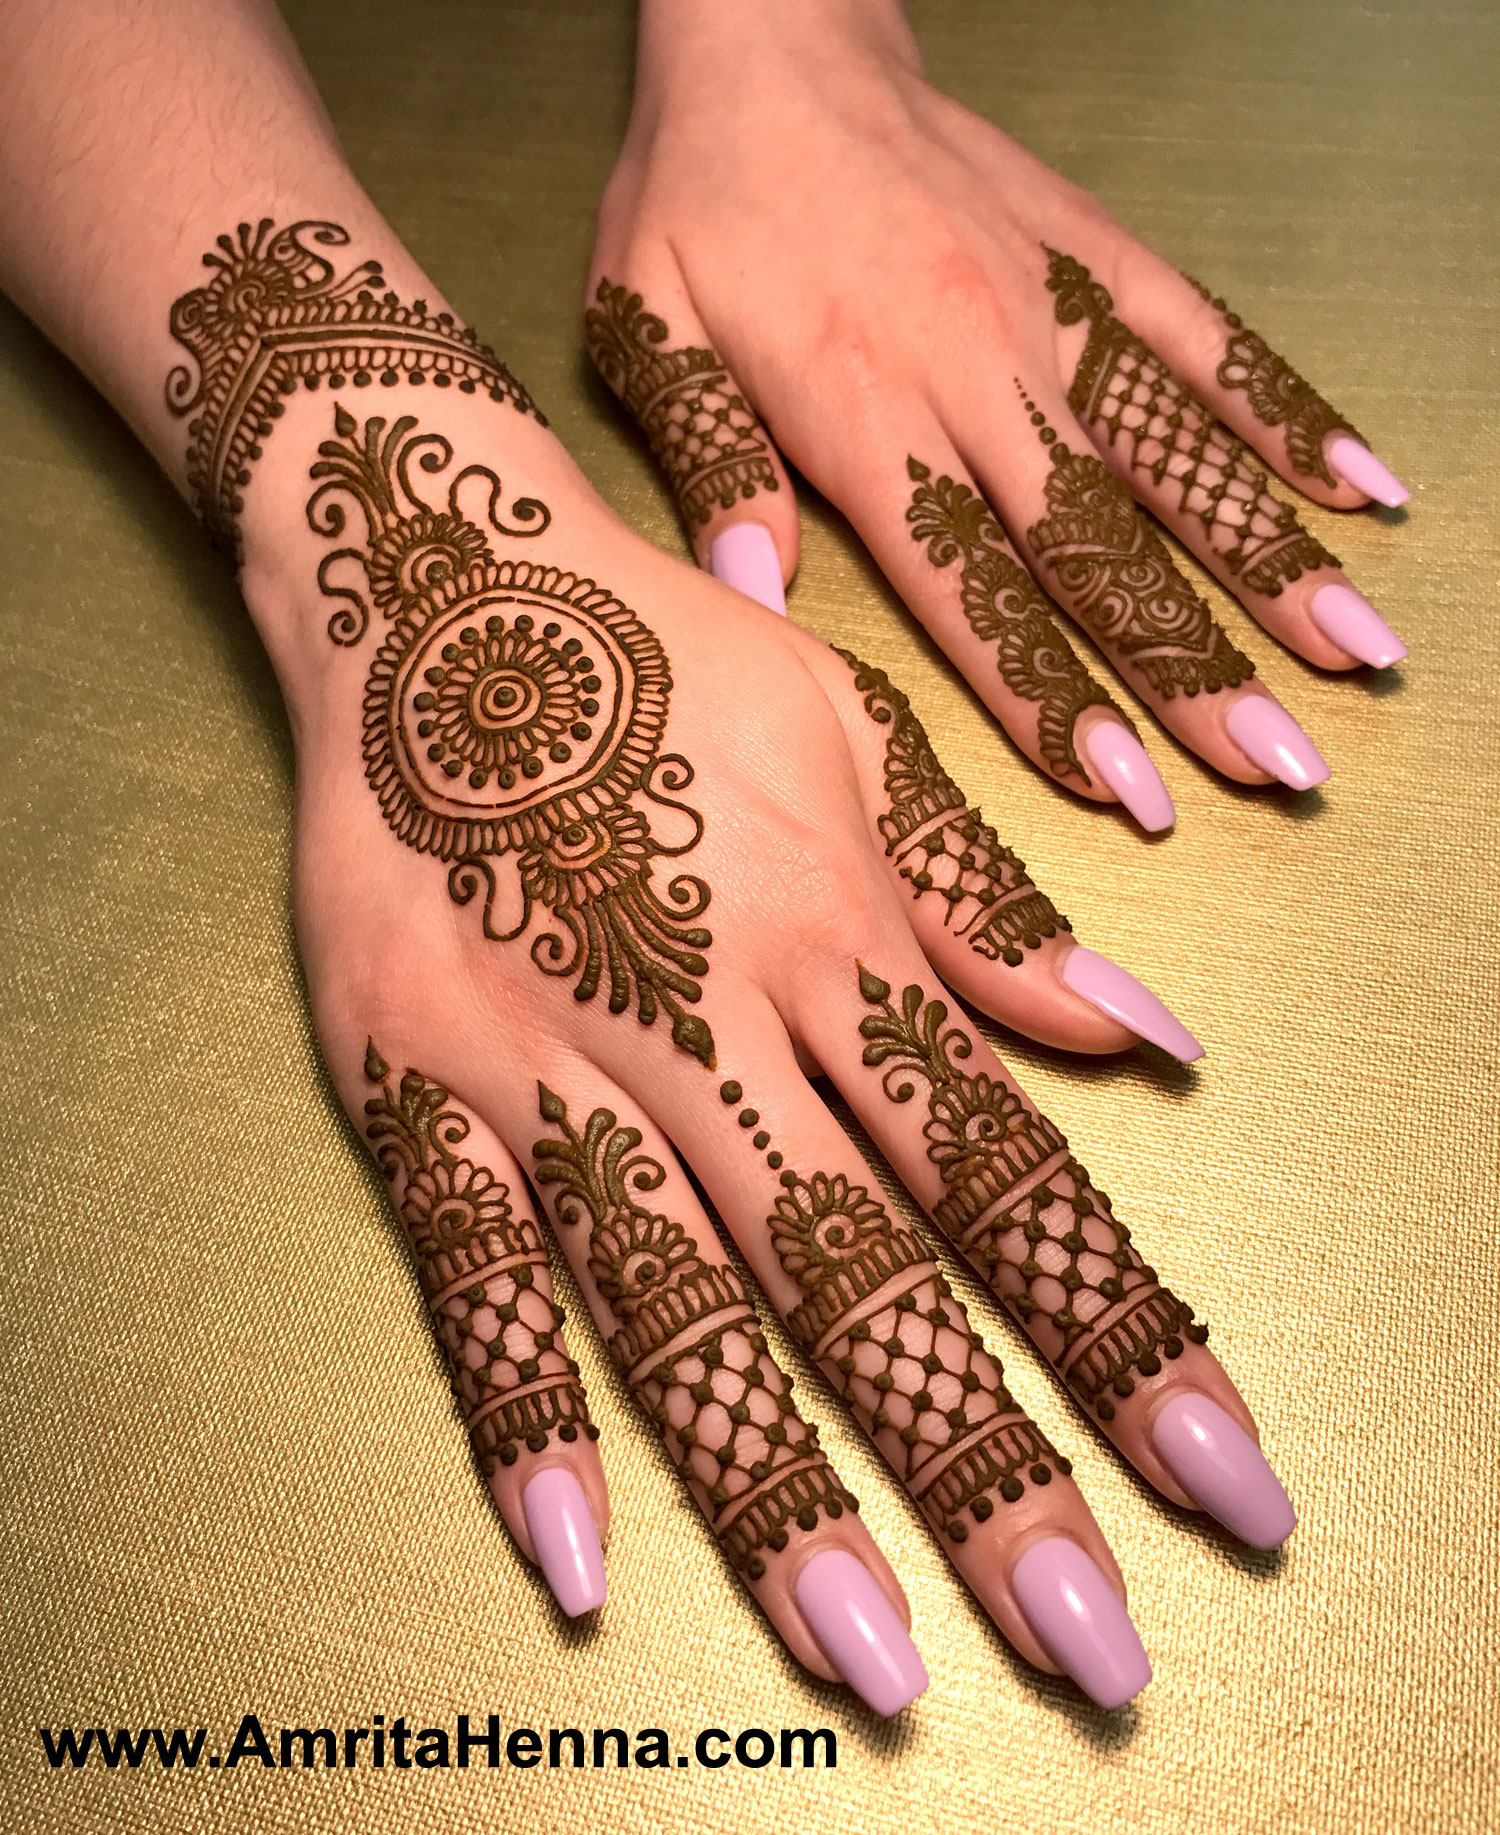 Amazing Mehndi Party Ideas : Top must try henna designs for your sister s wedding